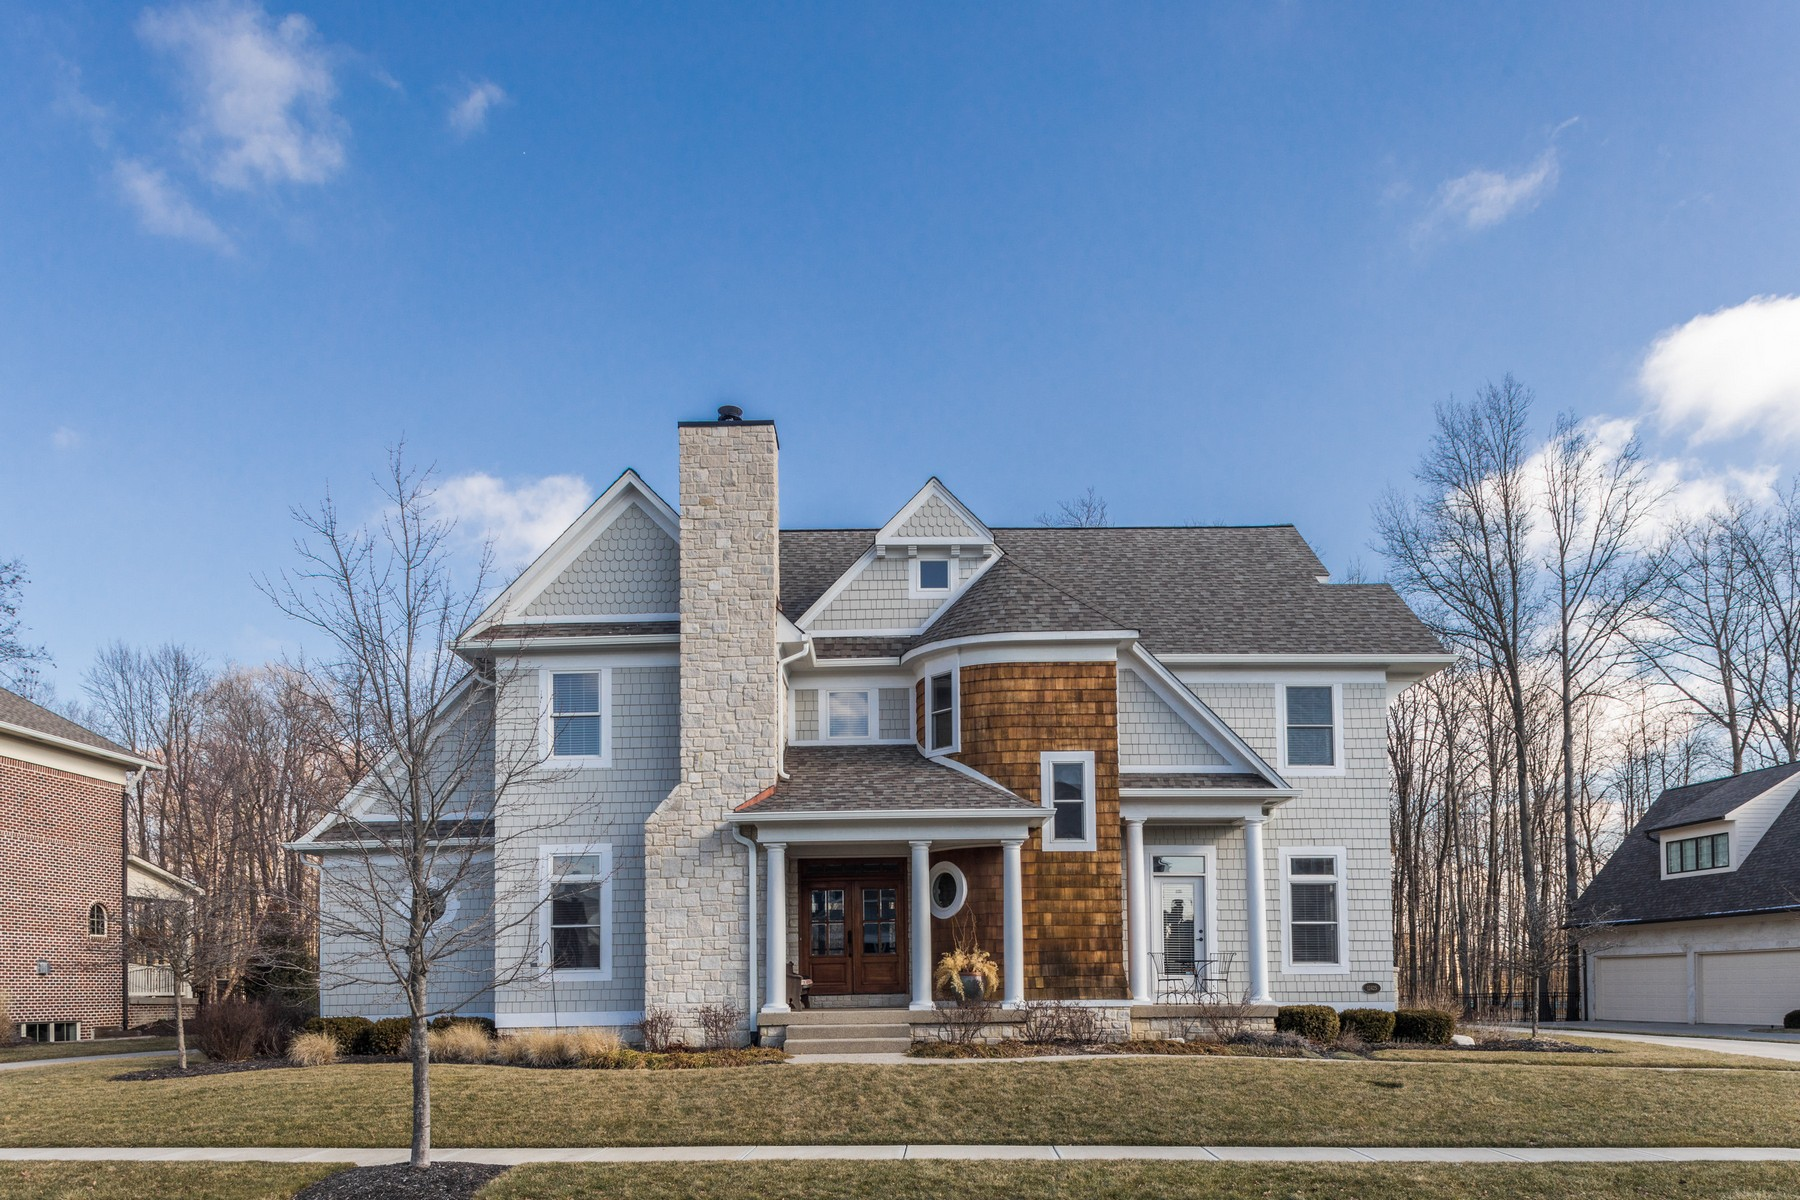 Villa per Vendita alle ore Exquisite 5 Bedroom Home in Village of Westclay 13425 Abercorn Street, Carmel, Indiana, 46032 Stati Uniti